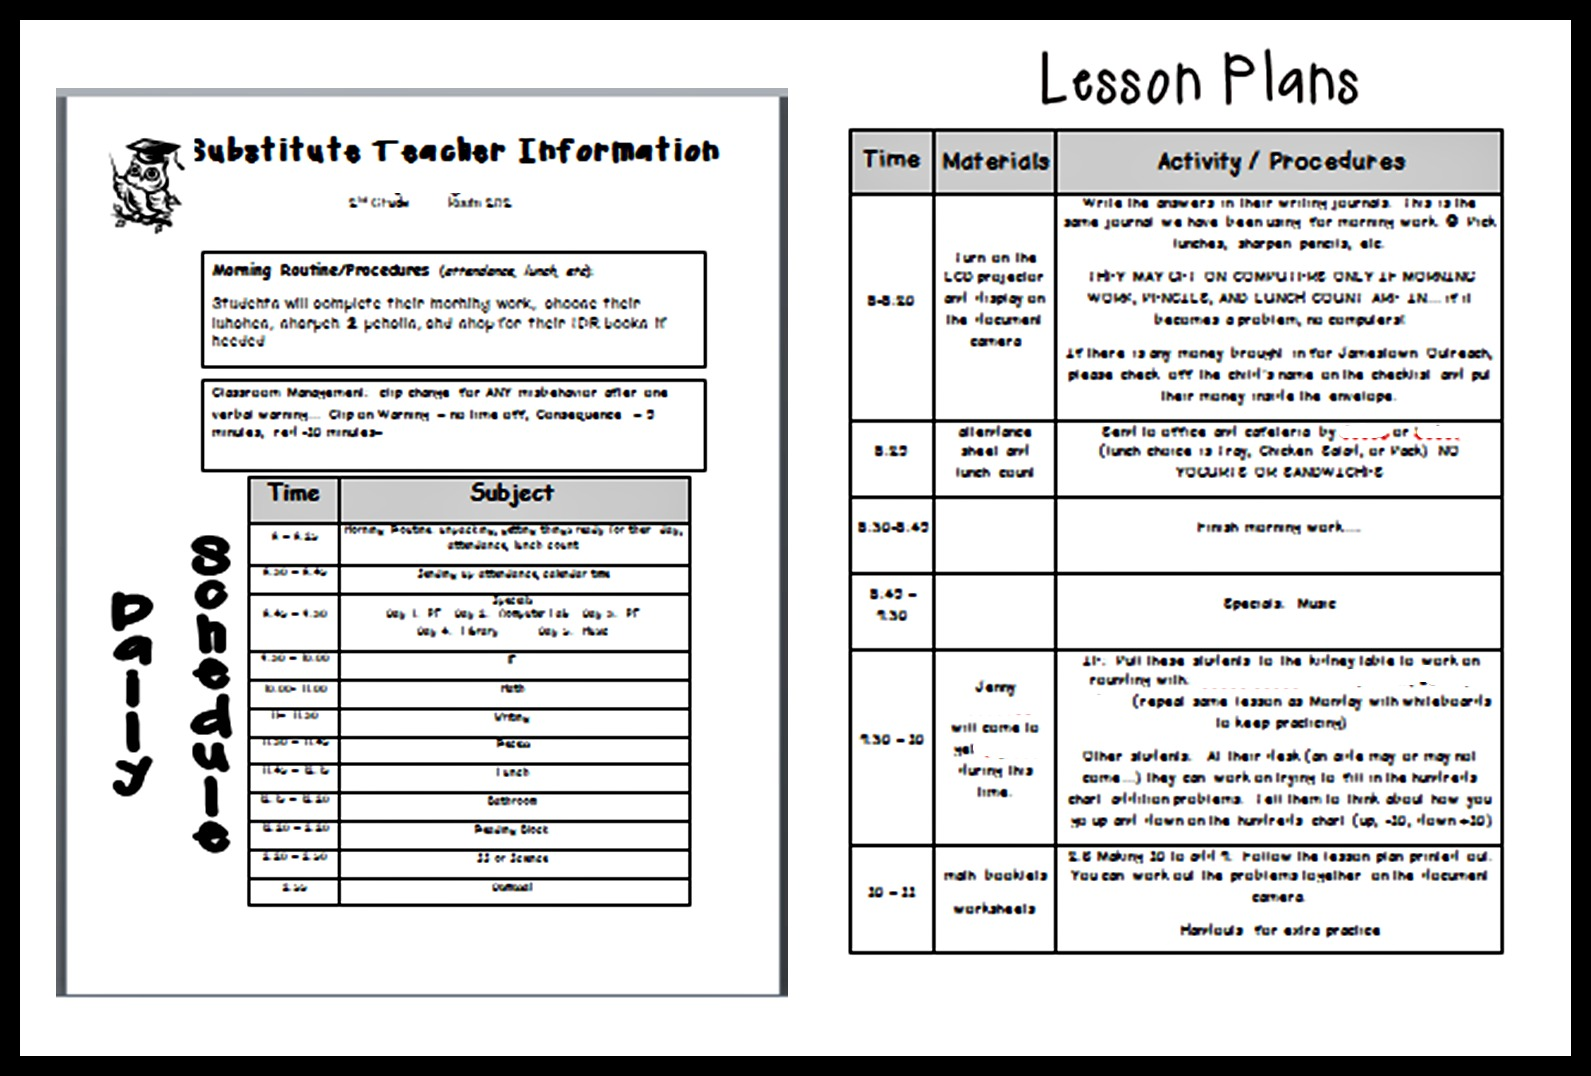 Teacher Lesson Plan. Educationjourney Lesson Plans I Like The